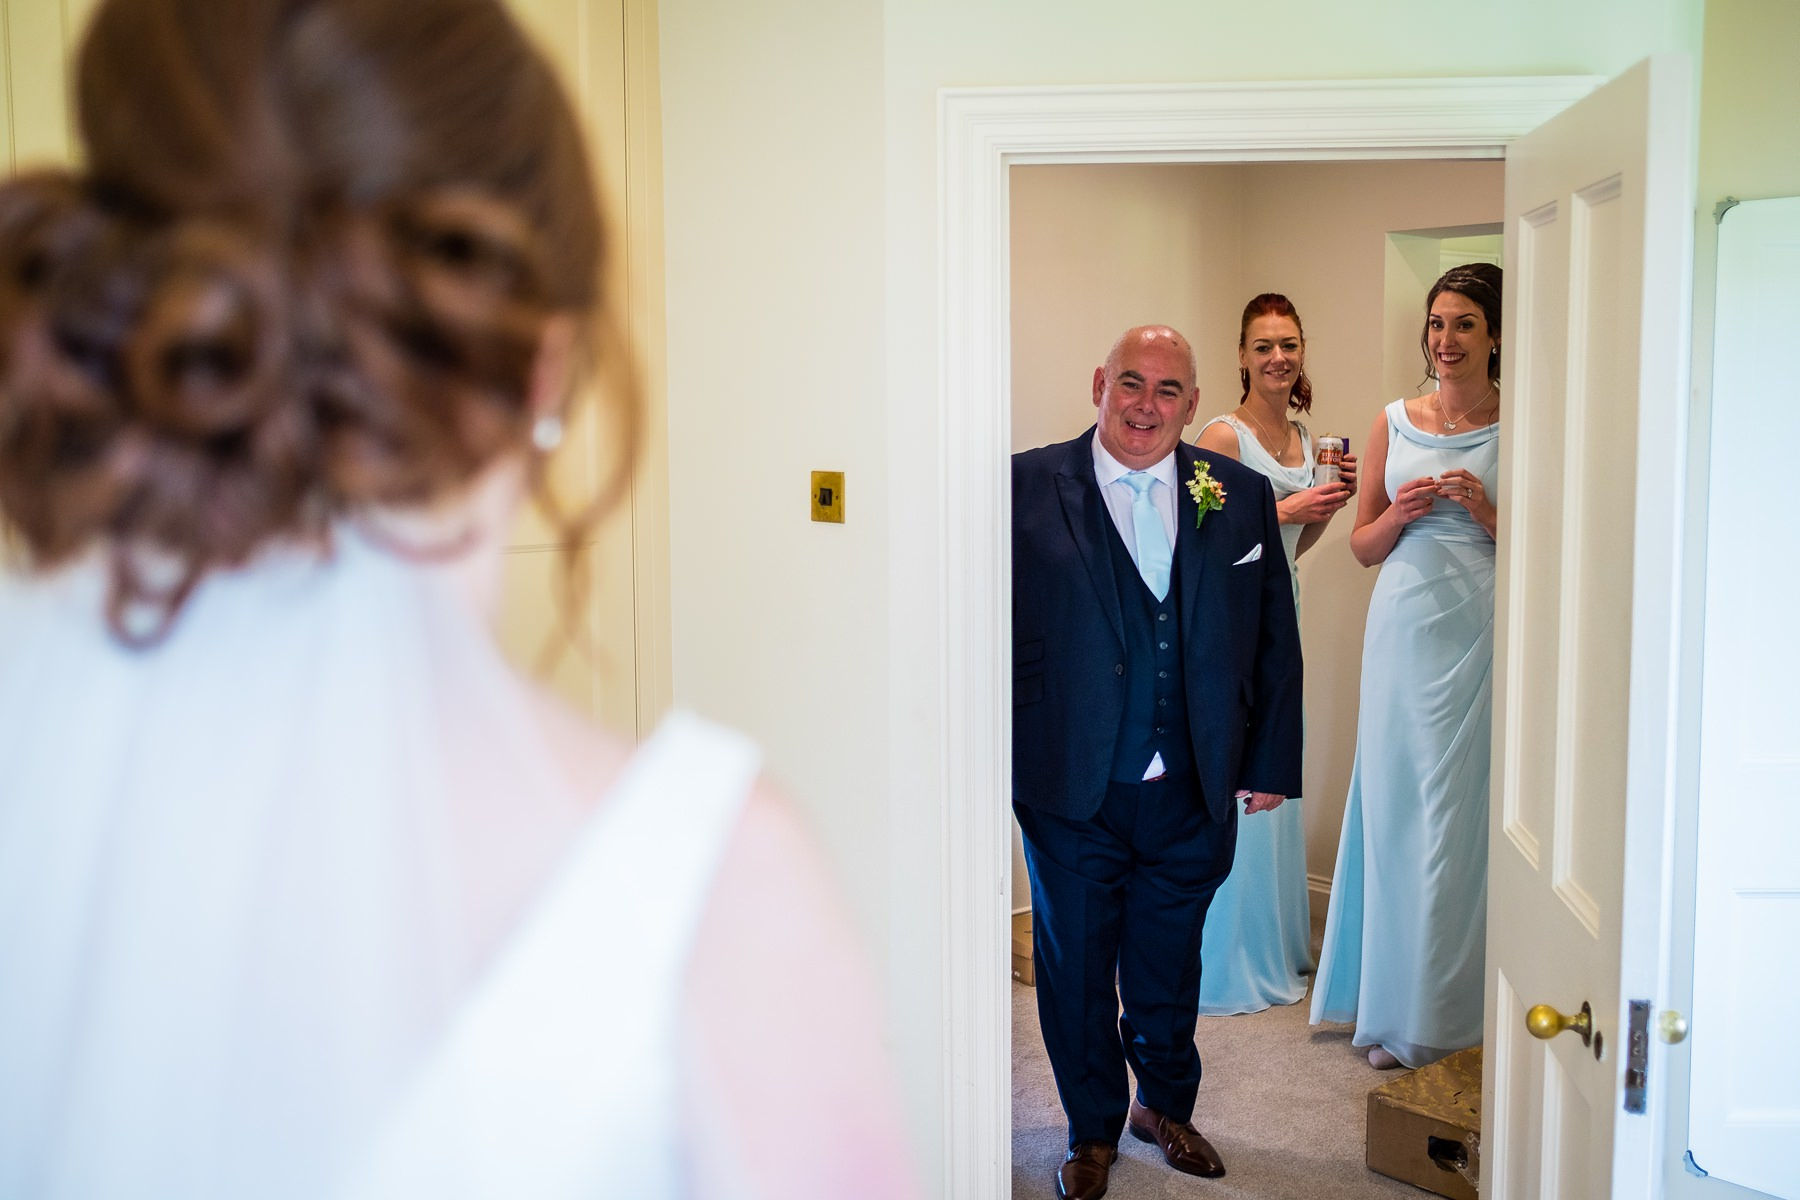 father of the bride seeing the bride for the first time